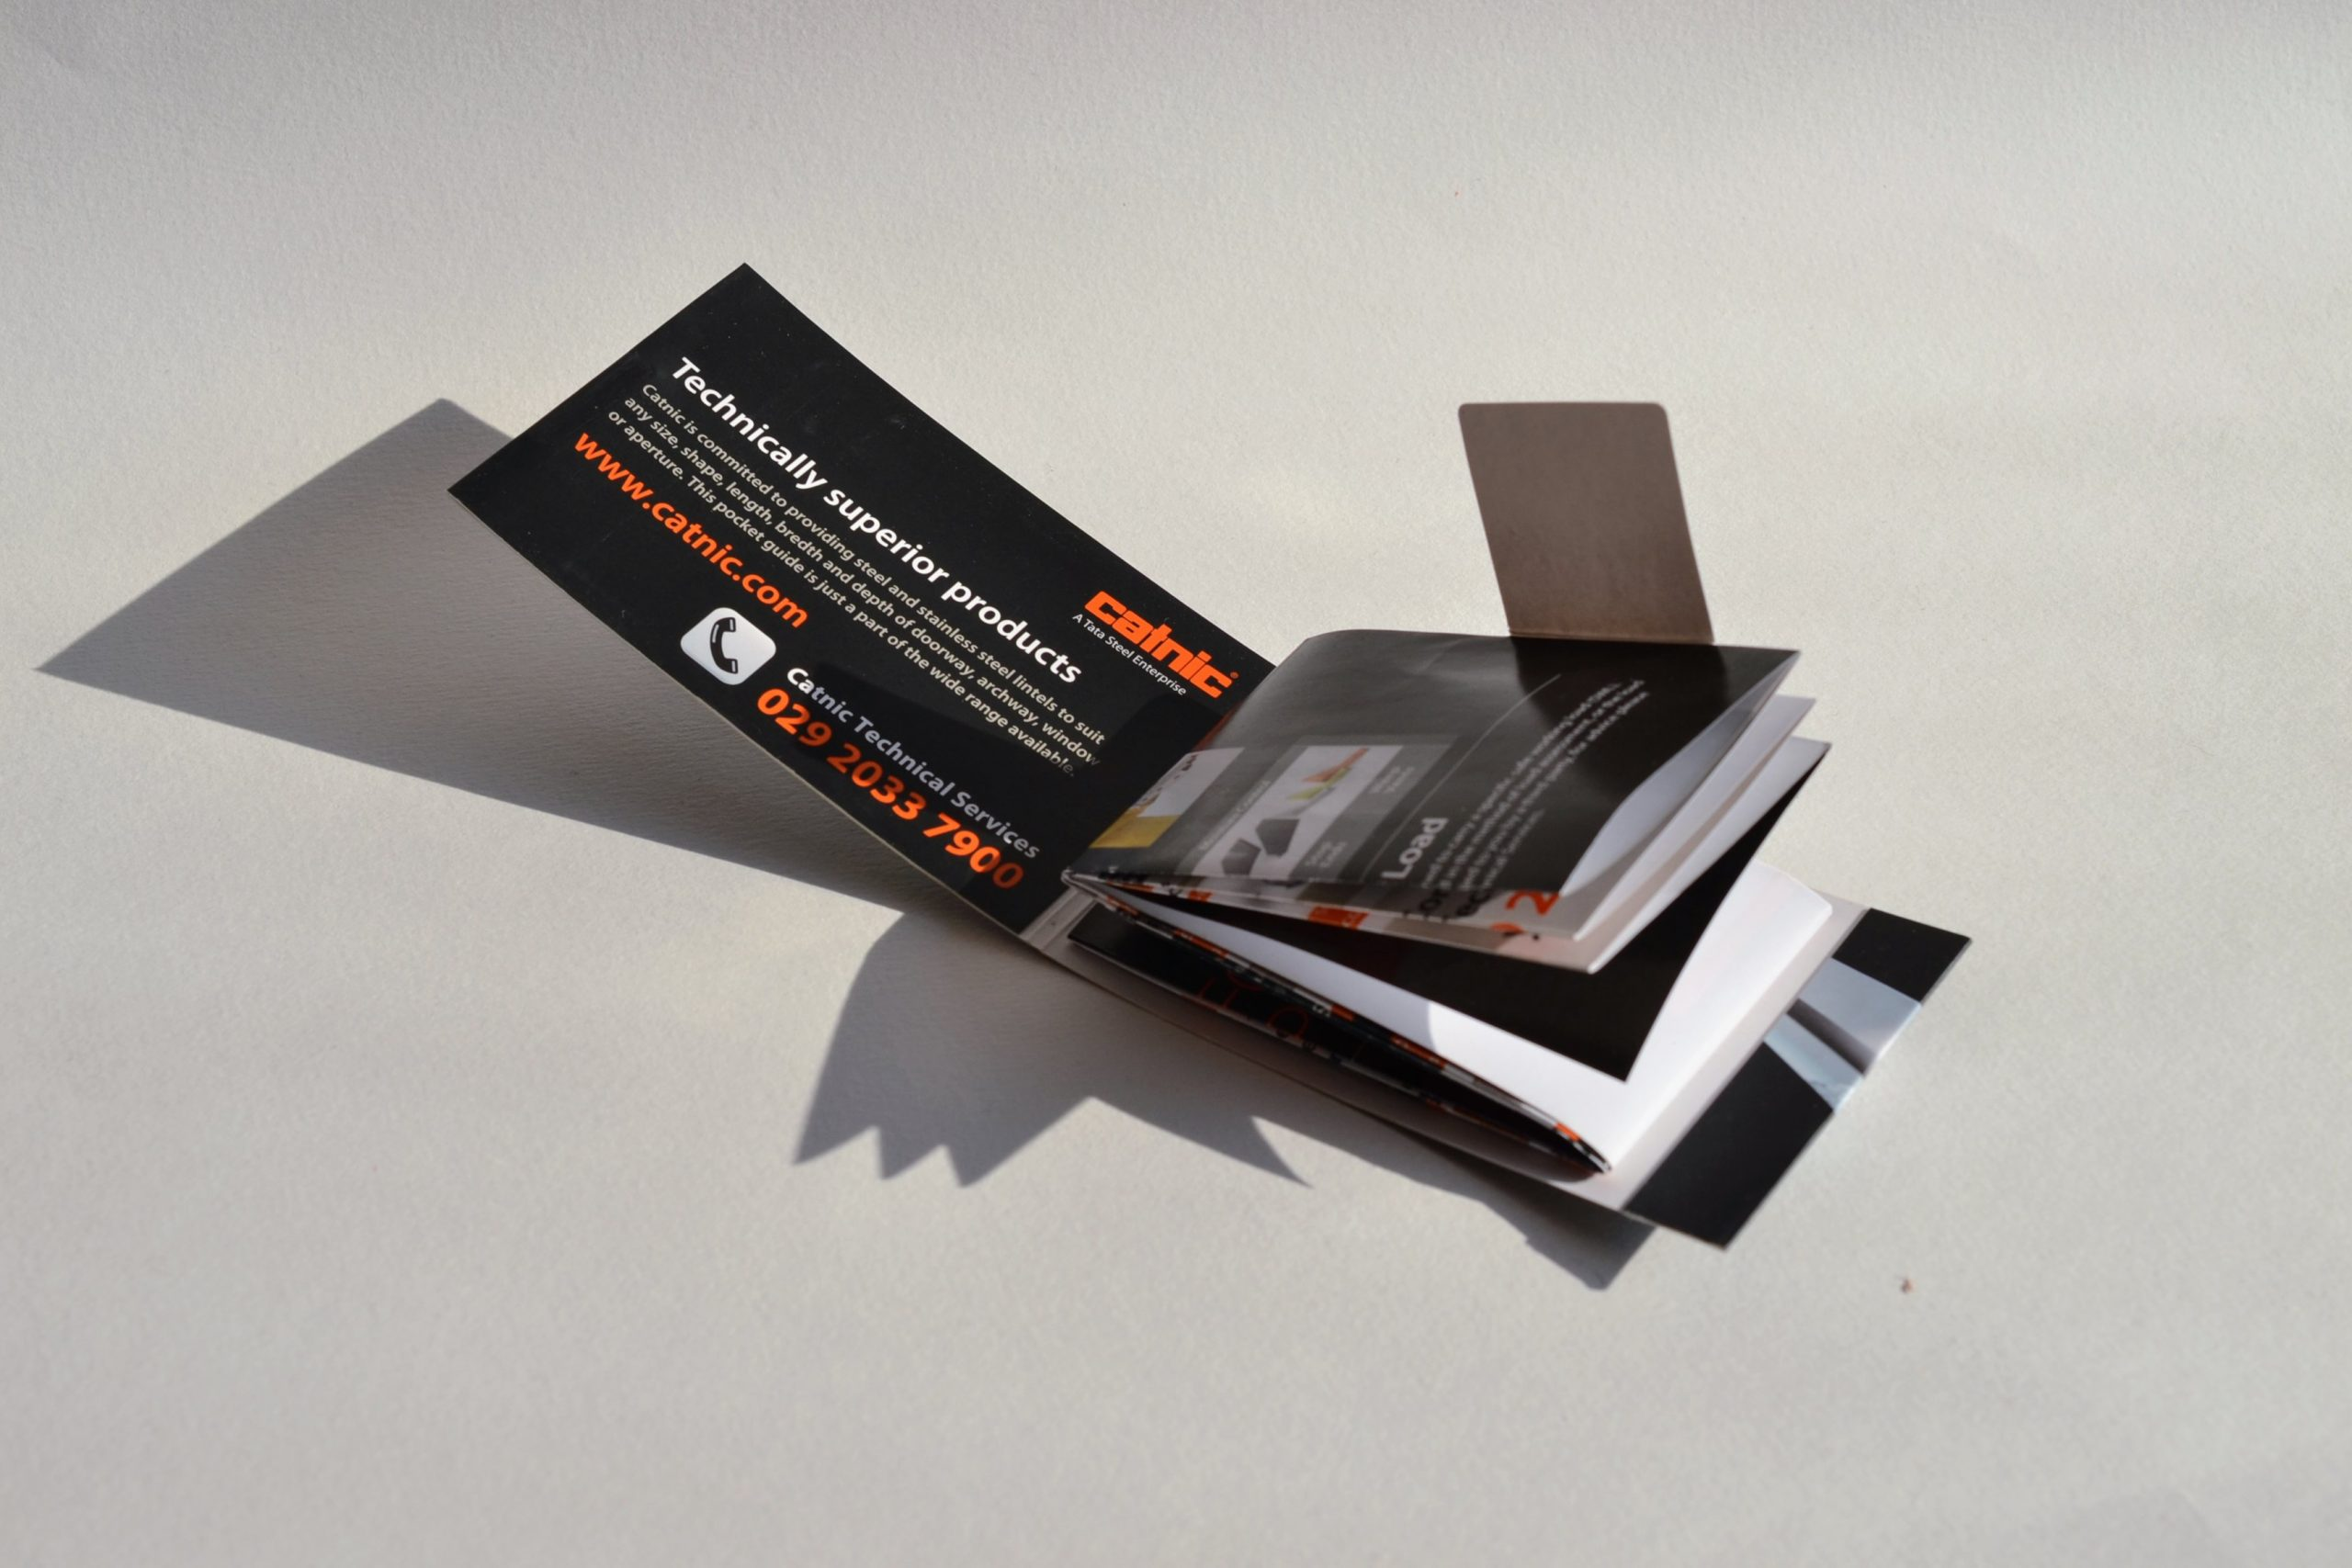 unfolding mag card pop-out page